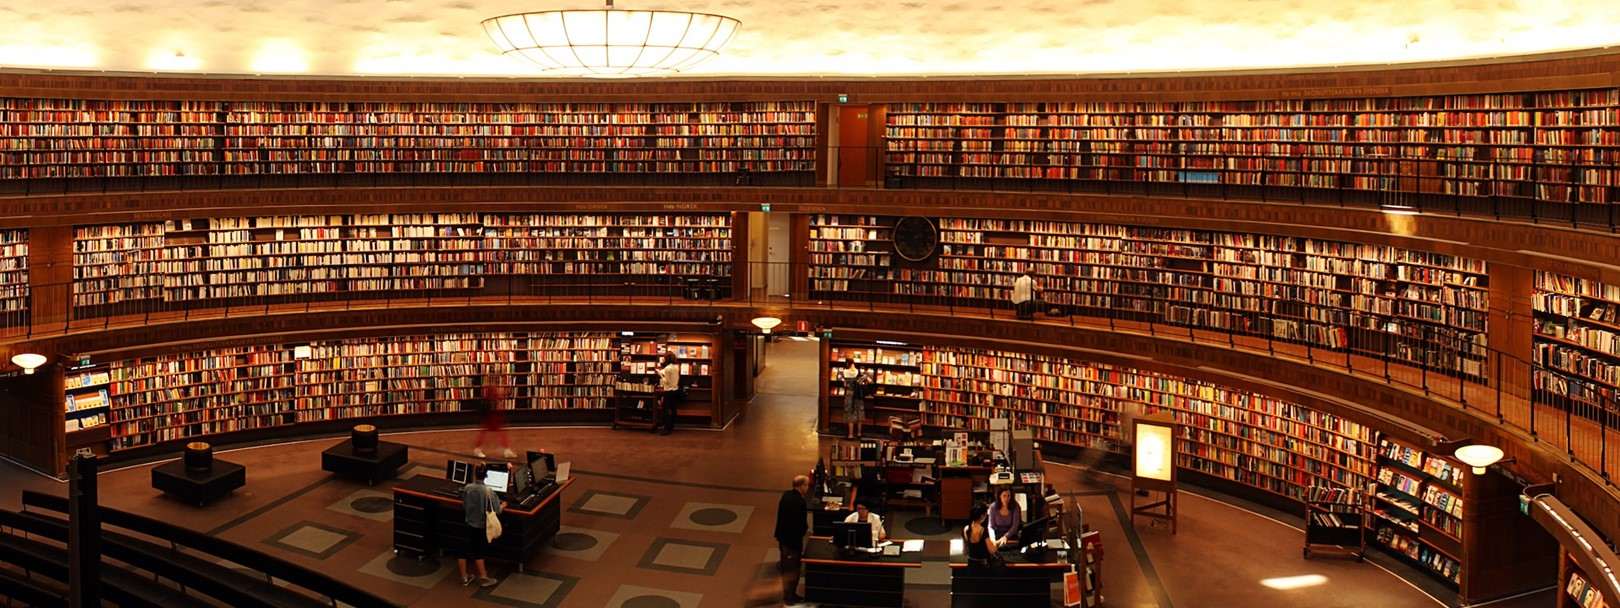 VOID - Resources for your Favorite Public Library